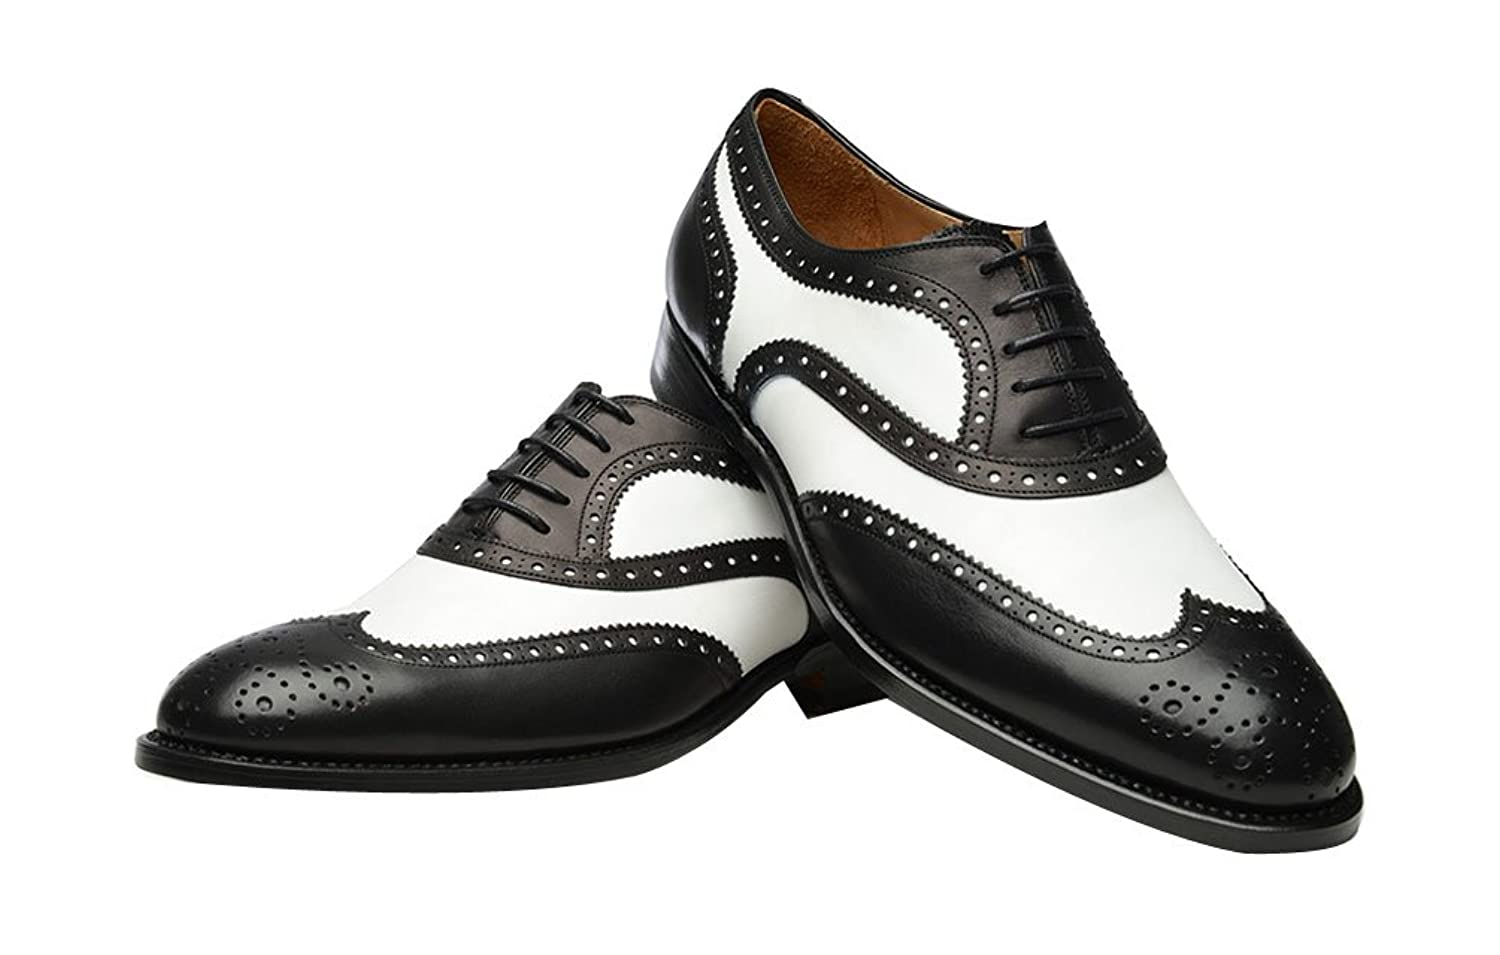 Men's 1920s Shoes History and Buying Guide ROYAL WIND Geninue Leather Spectator Shoes Mens Black White Lace up Wing Tip Perforated Dress Shoes $79.99 AT vintagedancer.com